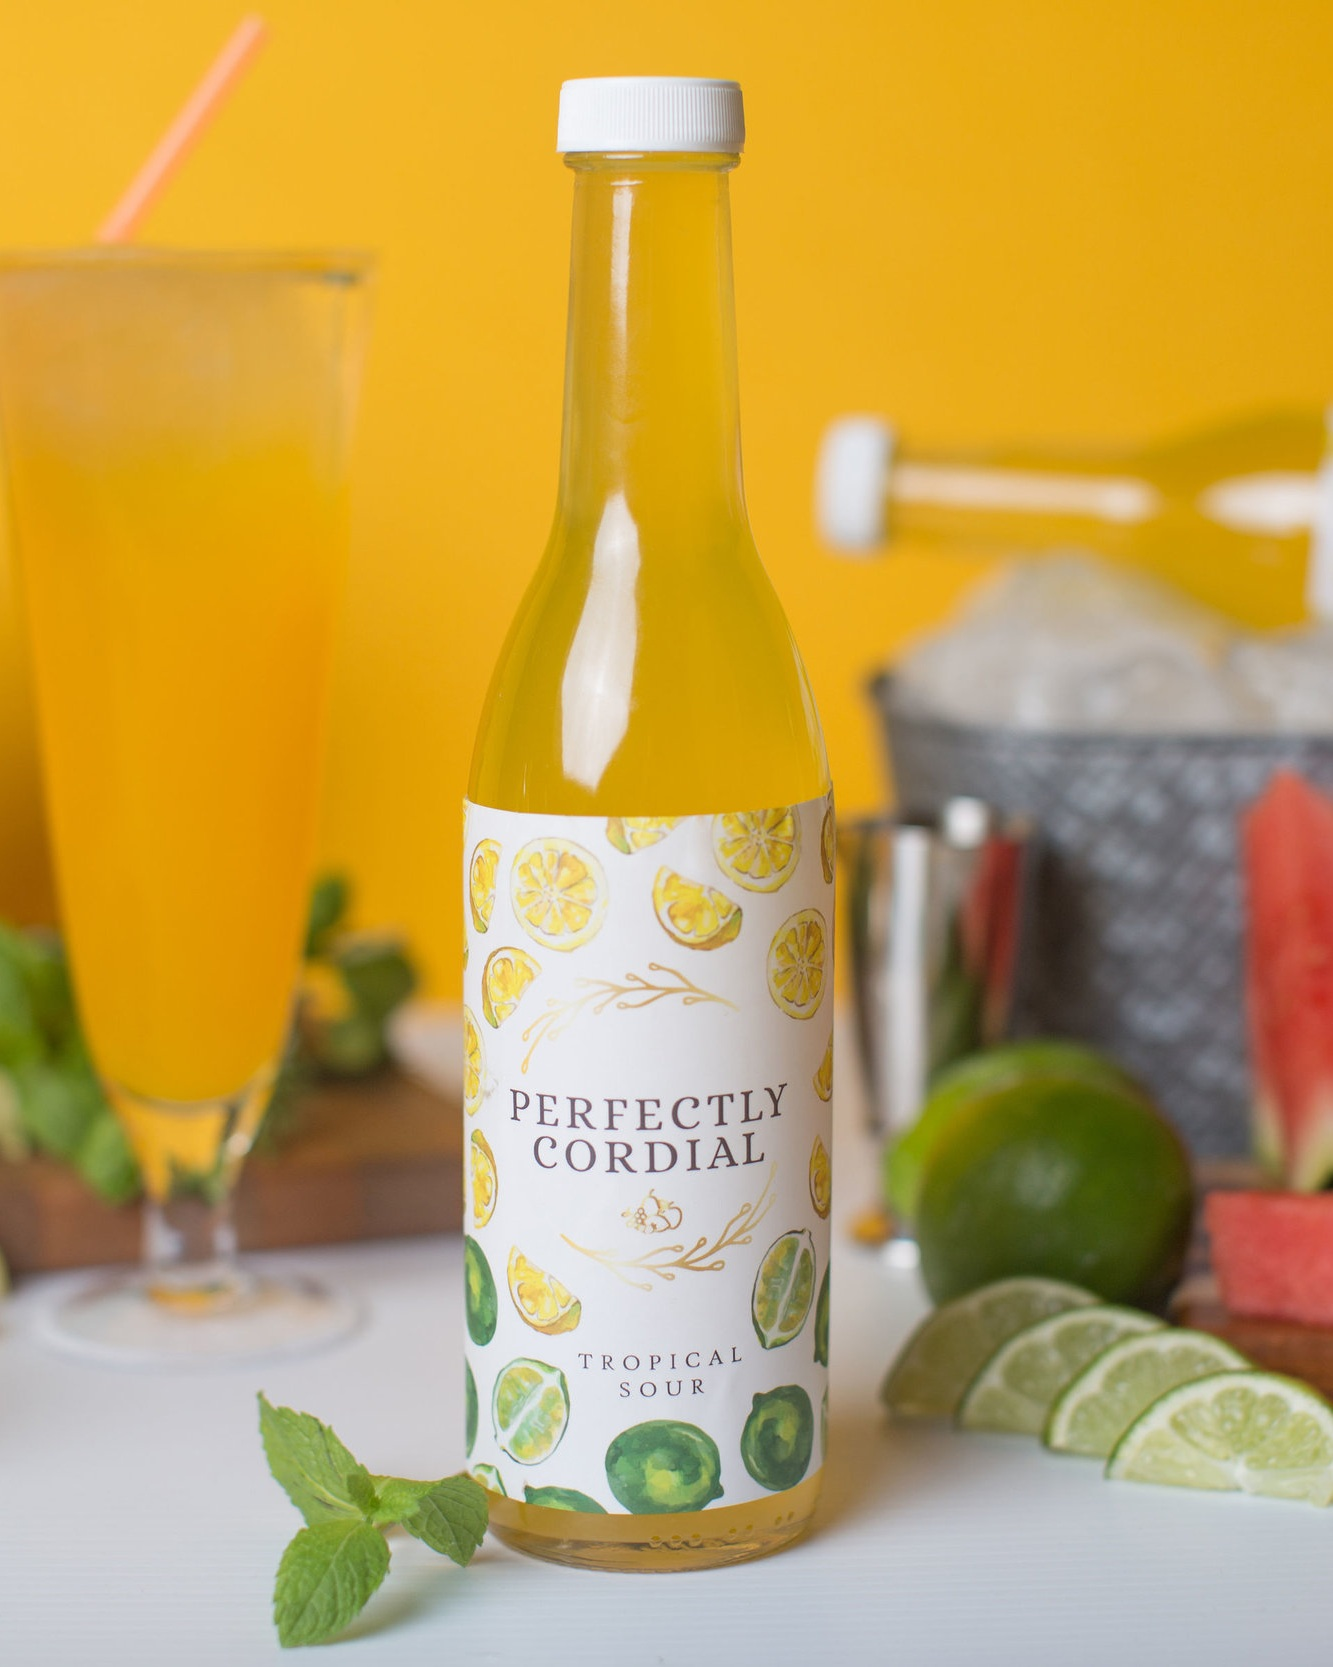 Tropical Sour - Tropical Sour or the best thing to have when life gives you lemons: a mix of lemon, Meyer lemon, lime, warm spices, lemon grass, lime leaf & cane sugar.From $14.99-$7.00